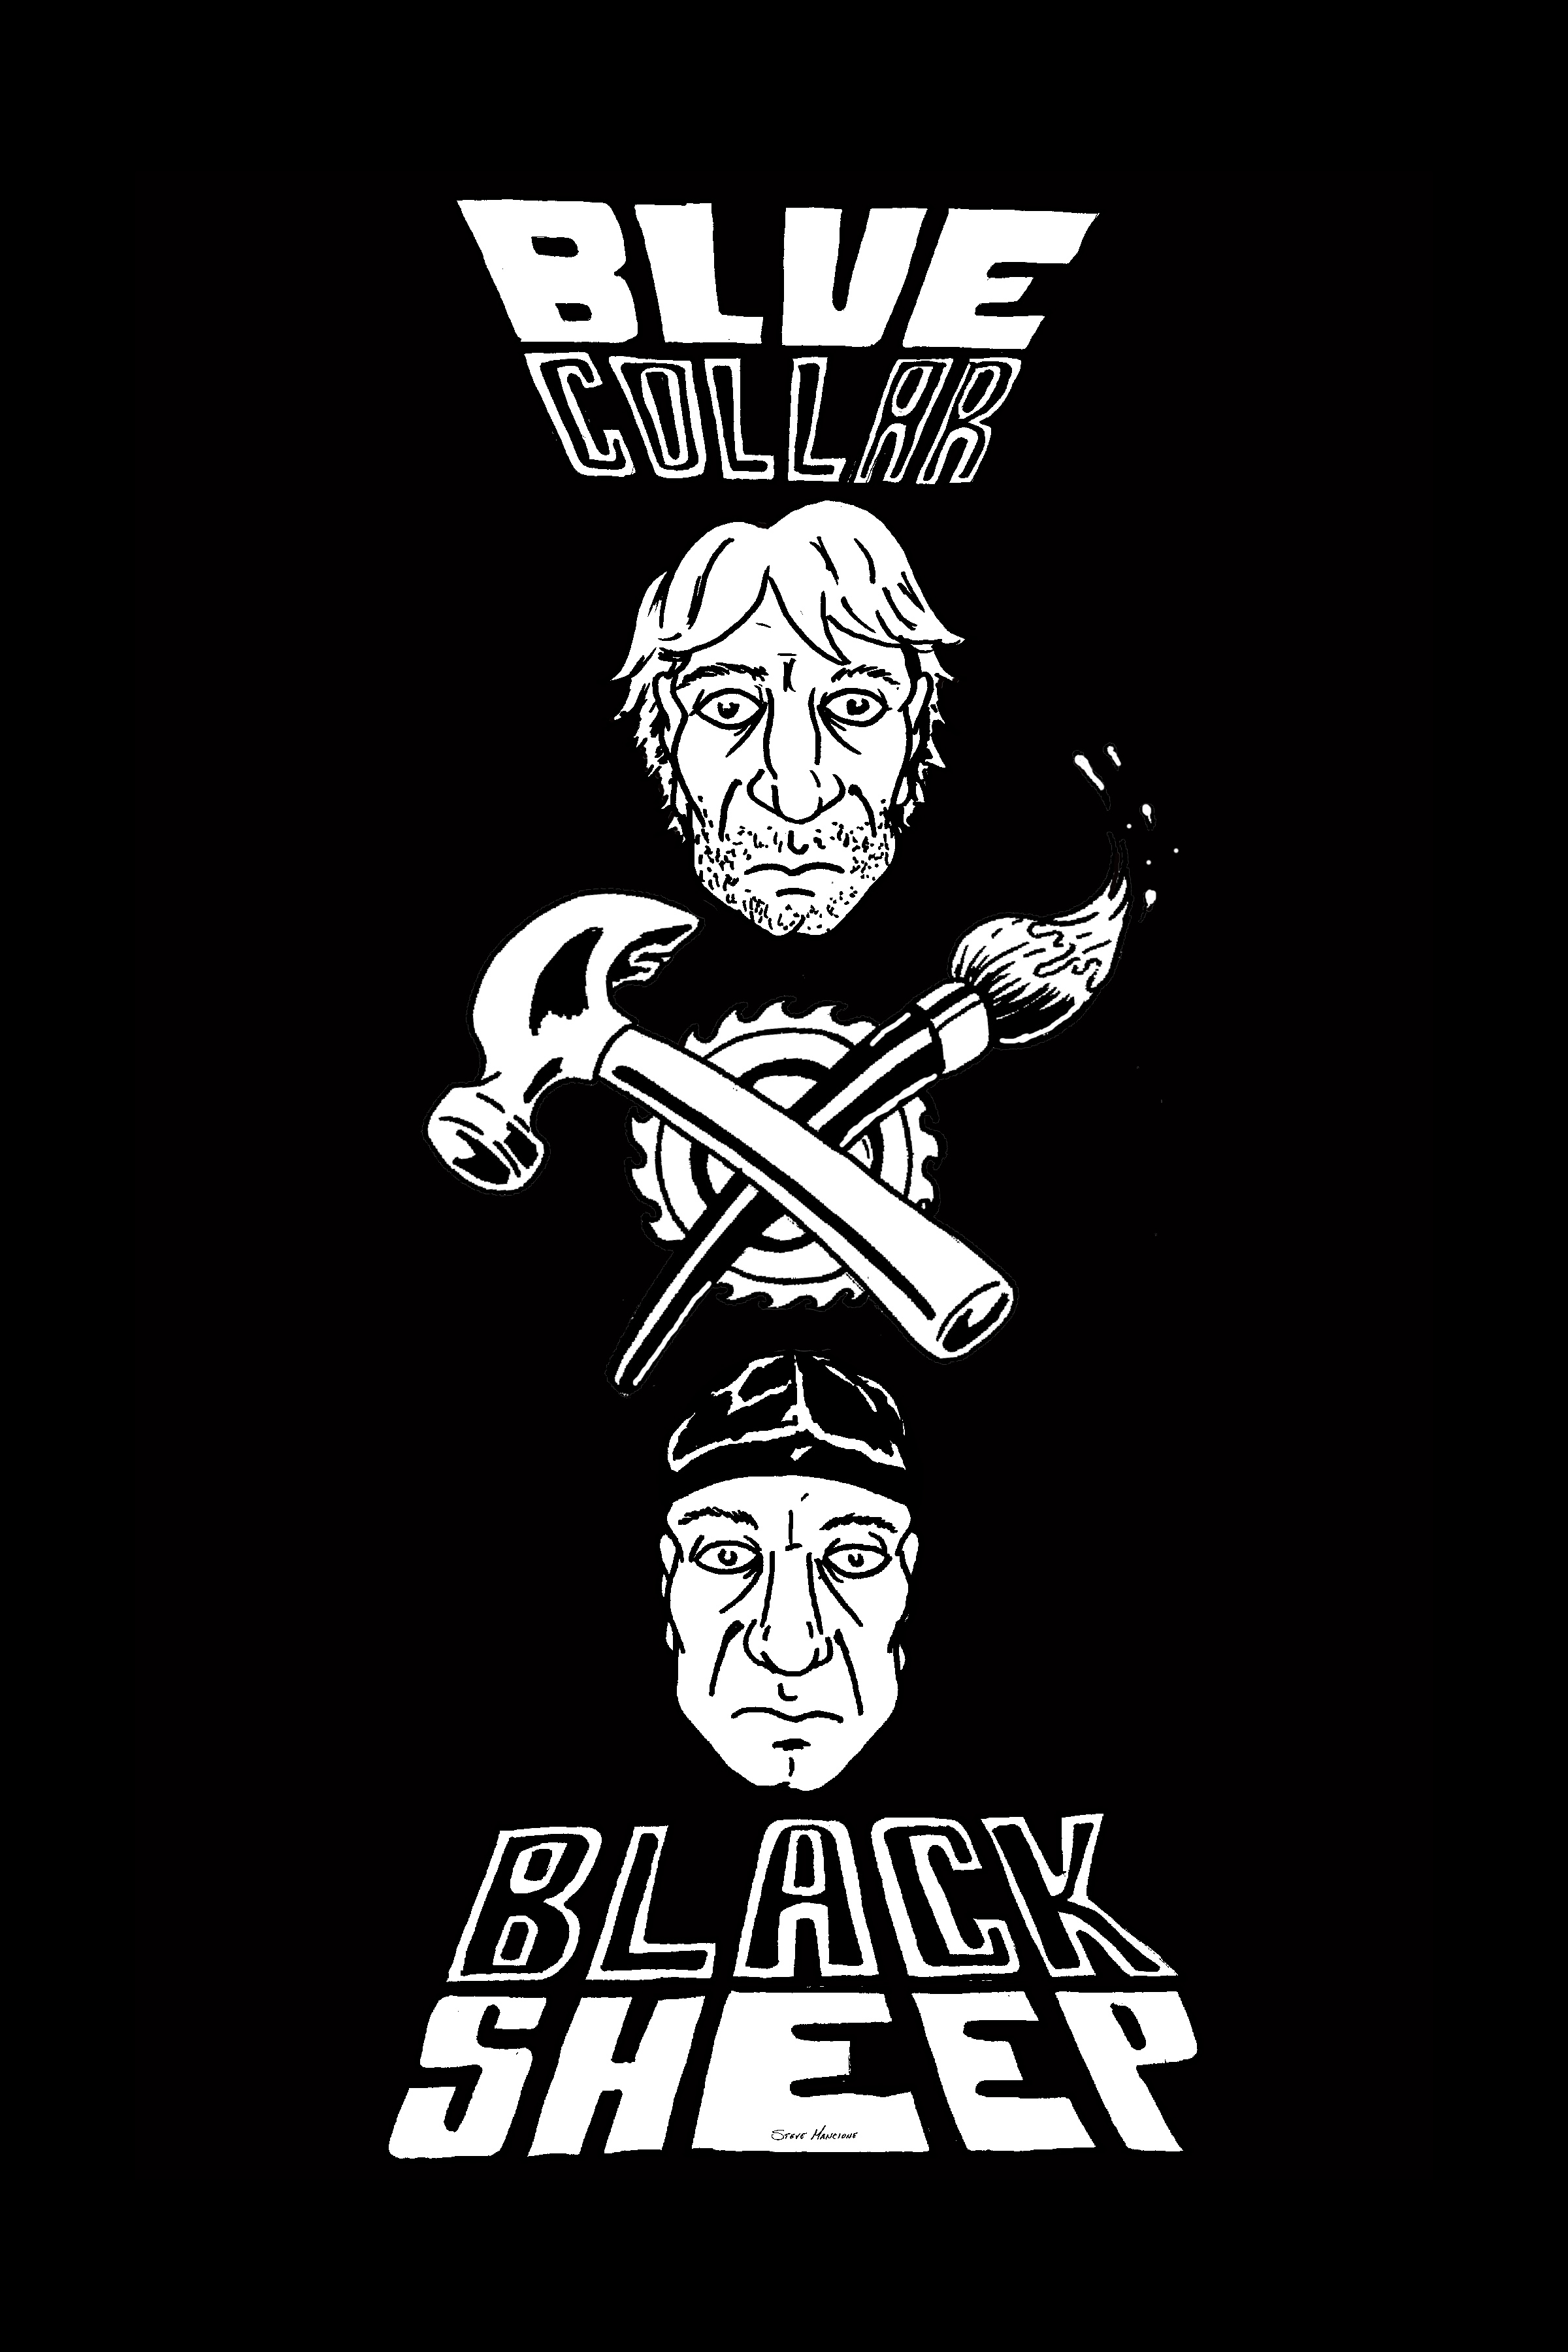 Cover of Blue Collar Black Sheep